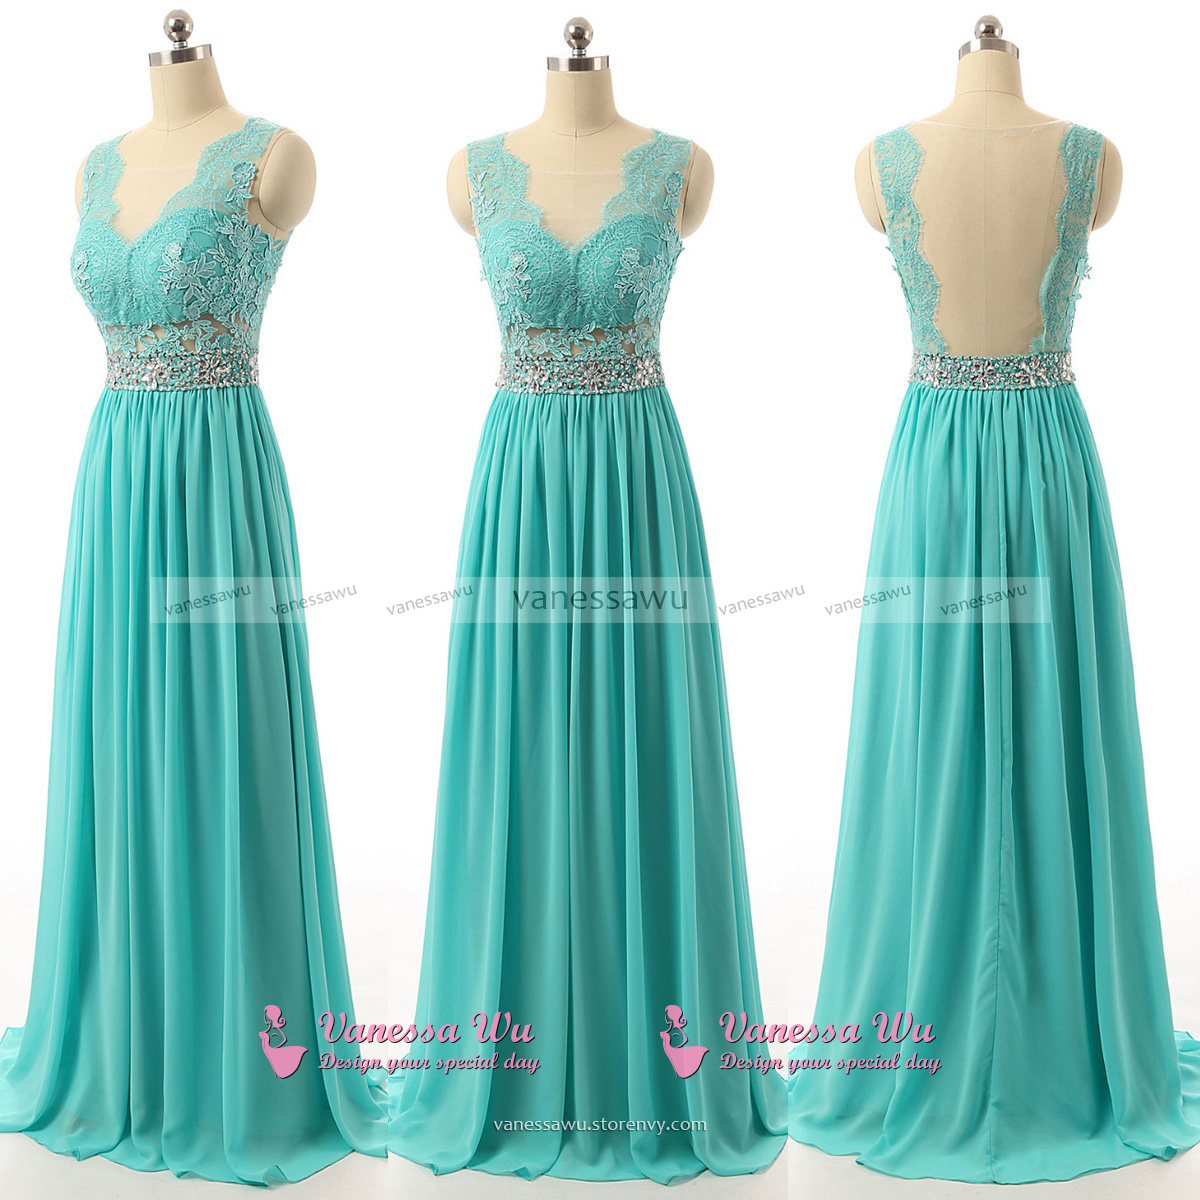 Backless Prom Dresses with Cutouts, Lace V-neck Prom Dresses with ...